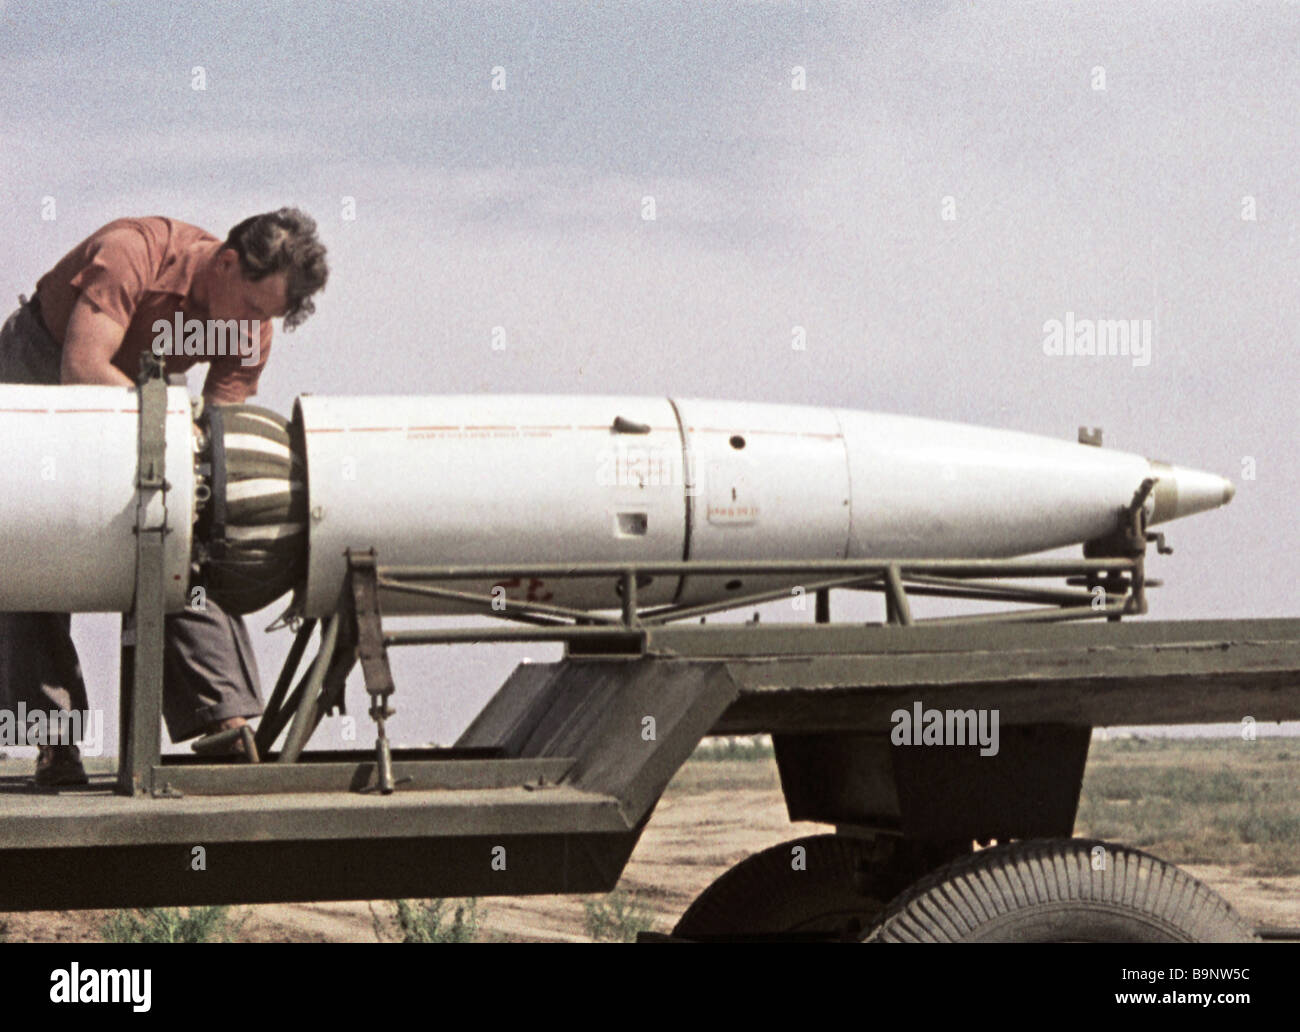 Docking the cone and airframe of meteorological rocket - Stock Image